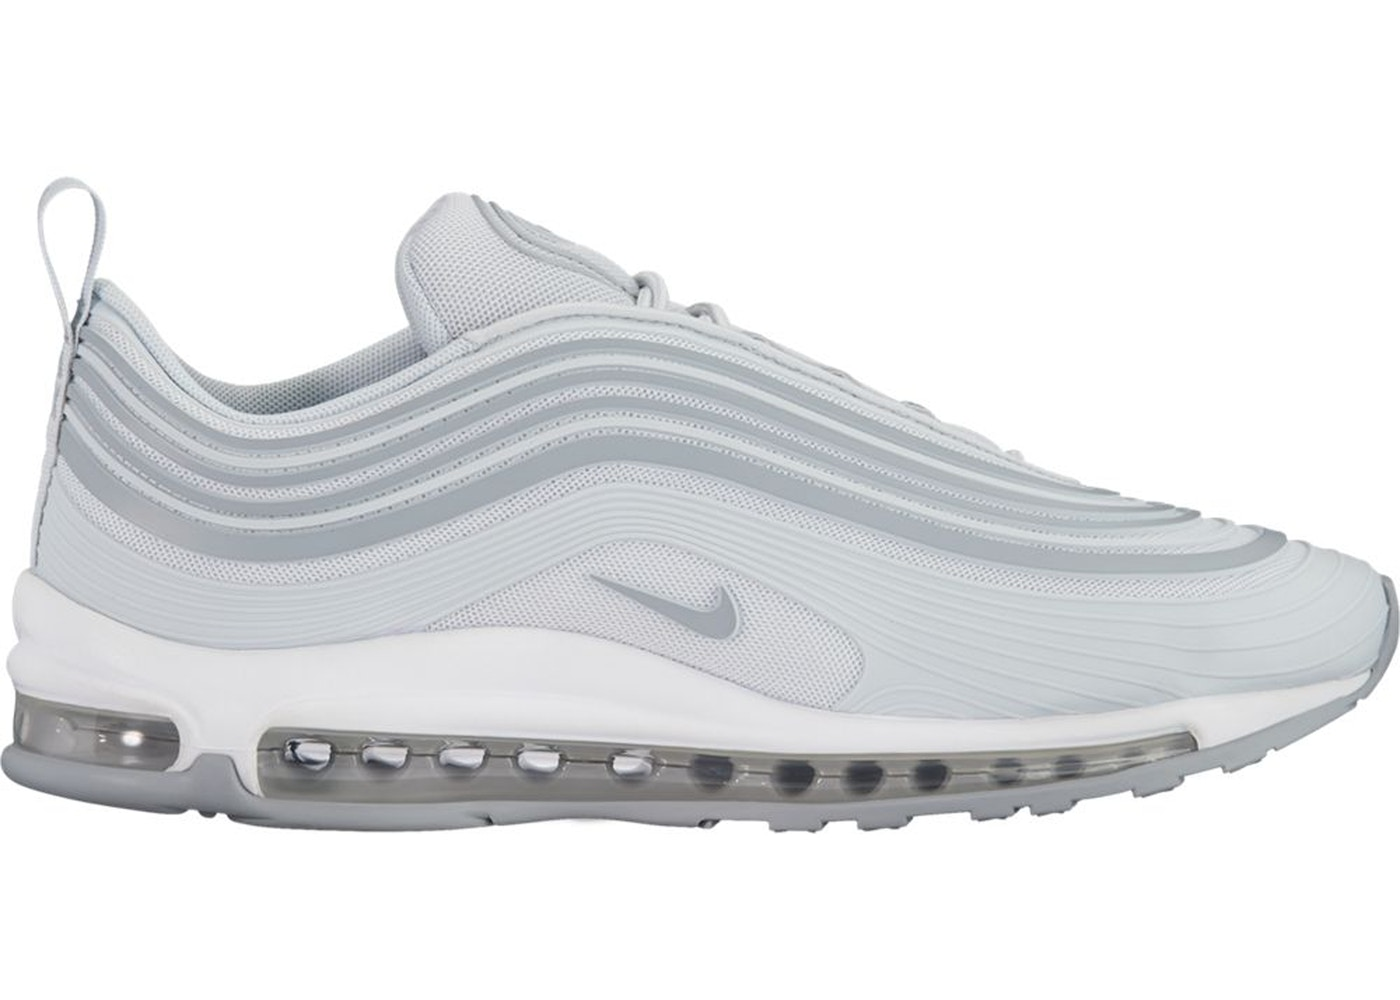 Nike Air Max 97 Ultra 17 Pure Platinum AH7581 001  AH7581 001